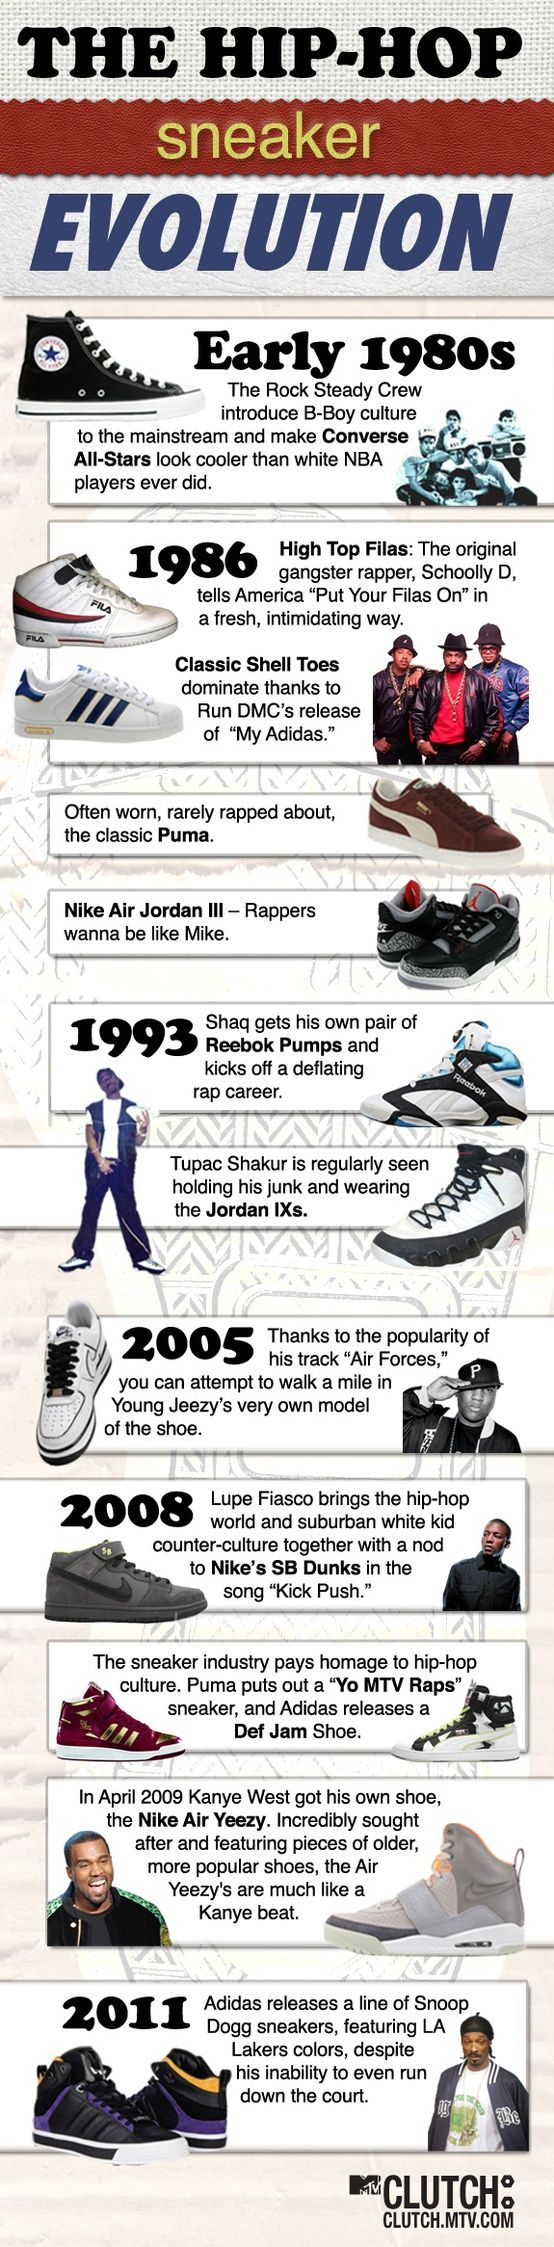 The Hip Hop Culture and Its Influence in Sneakers Evolution Infographic is one of the best Infographics created in the Fashion category. Check out The Hip Hop Culture and Its Influence in Sneakers Evolution now!